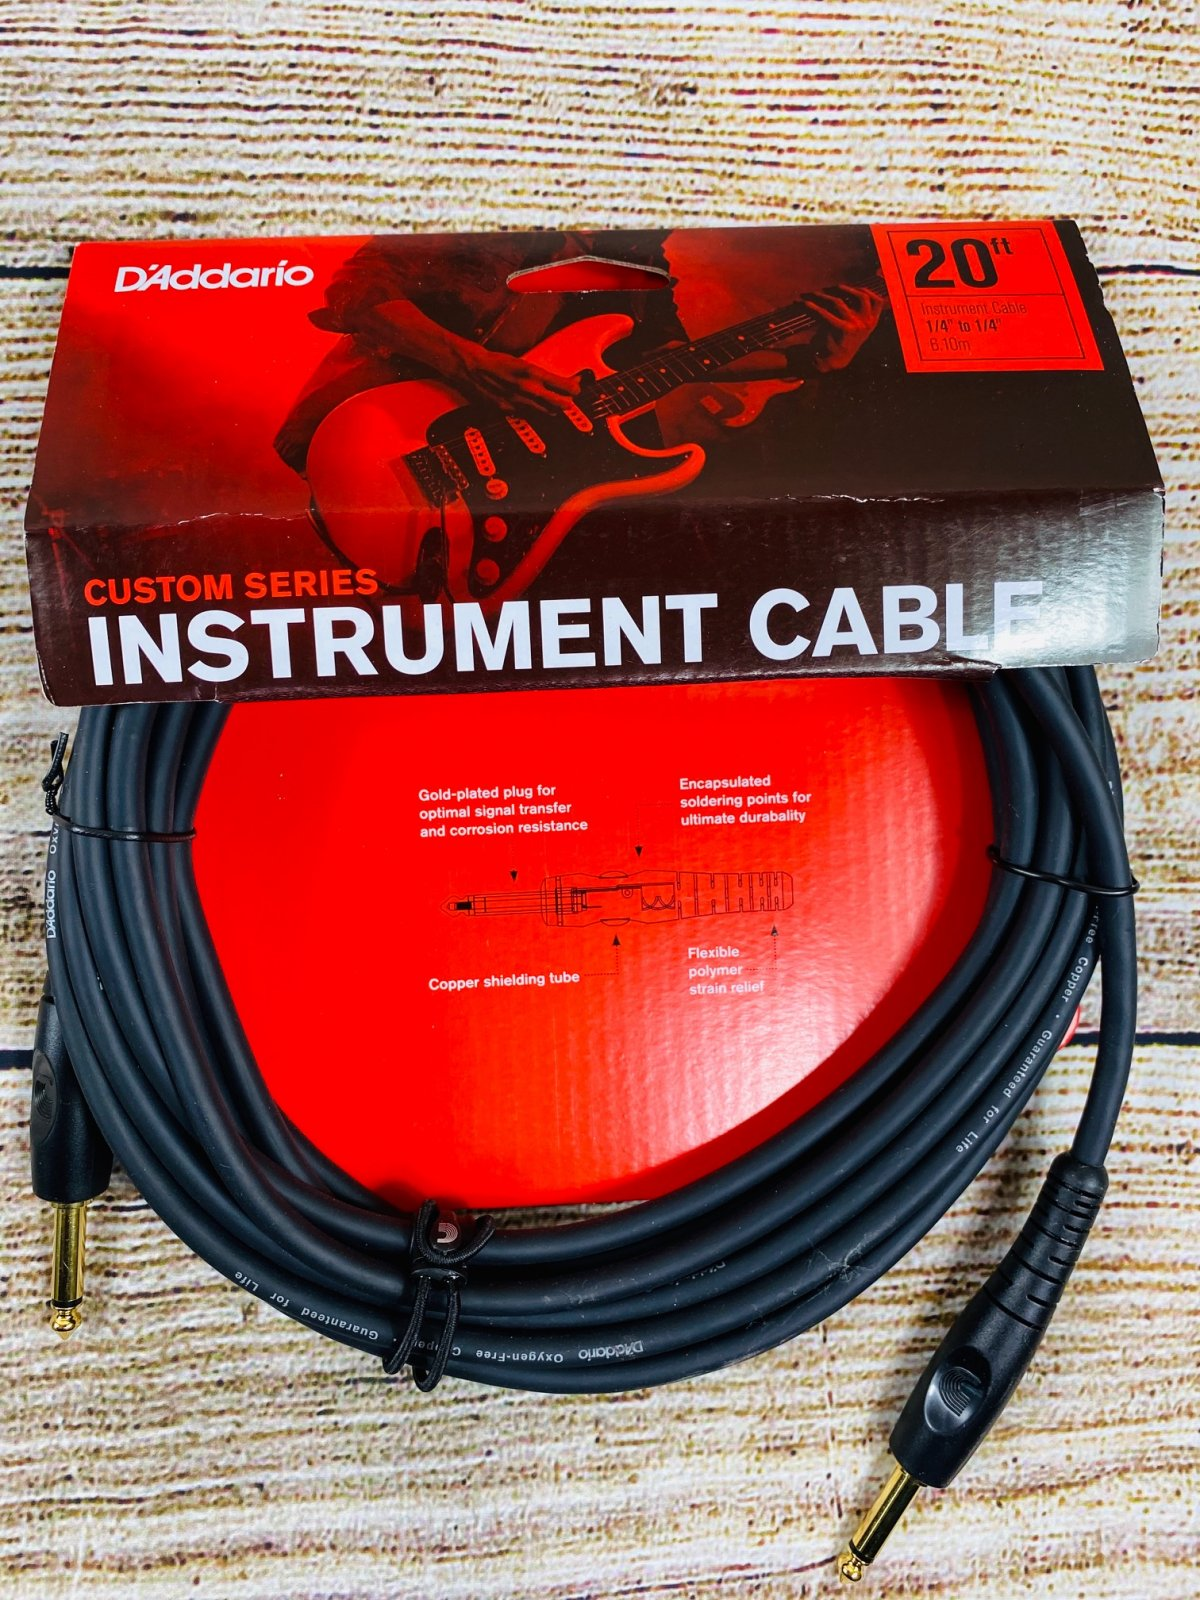 D'Addario PW-G-20 Custom Series Straight to Straight Instrument Cable - 20 foot